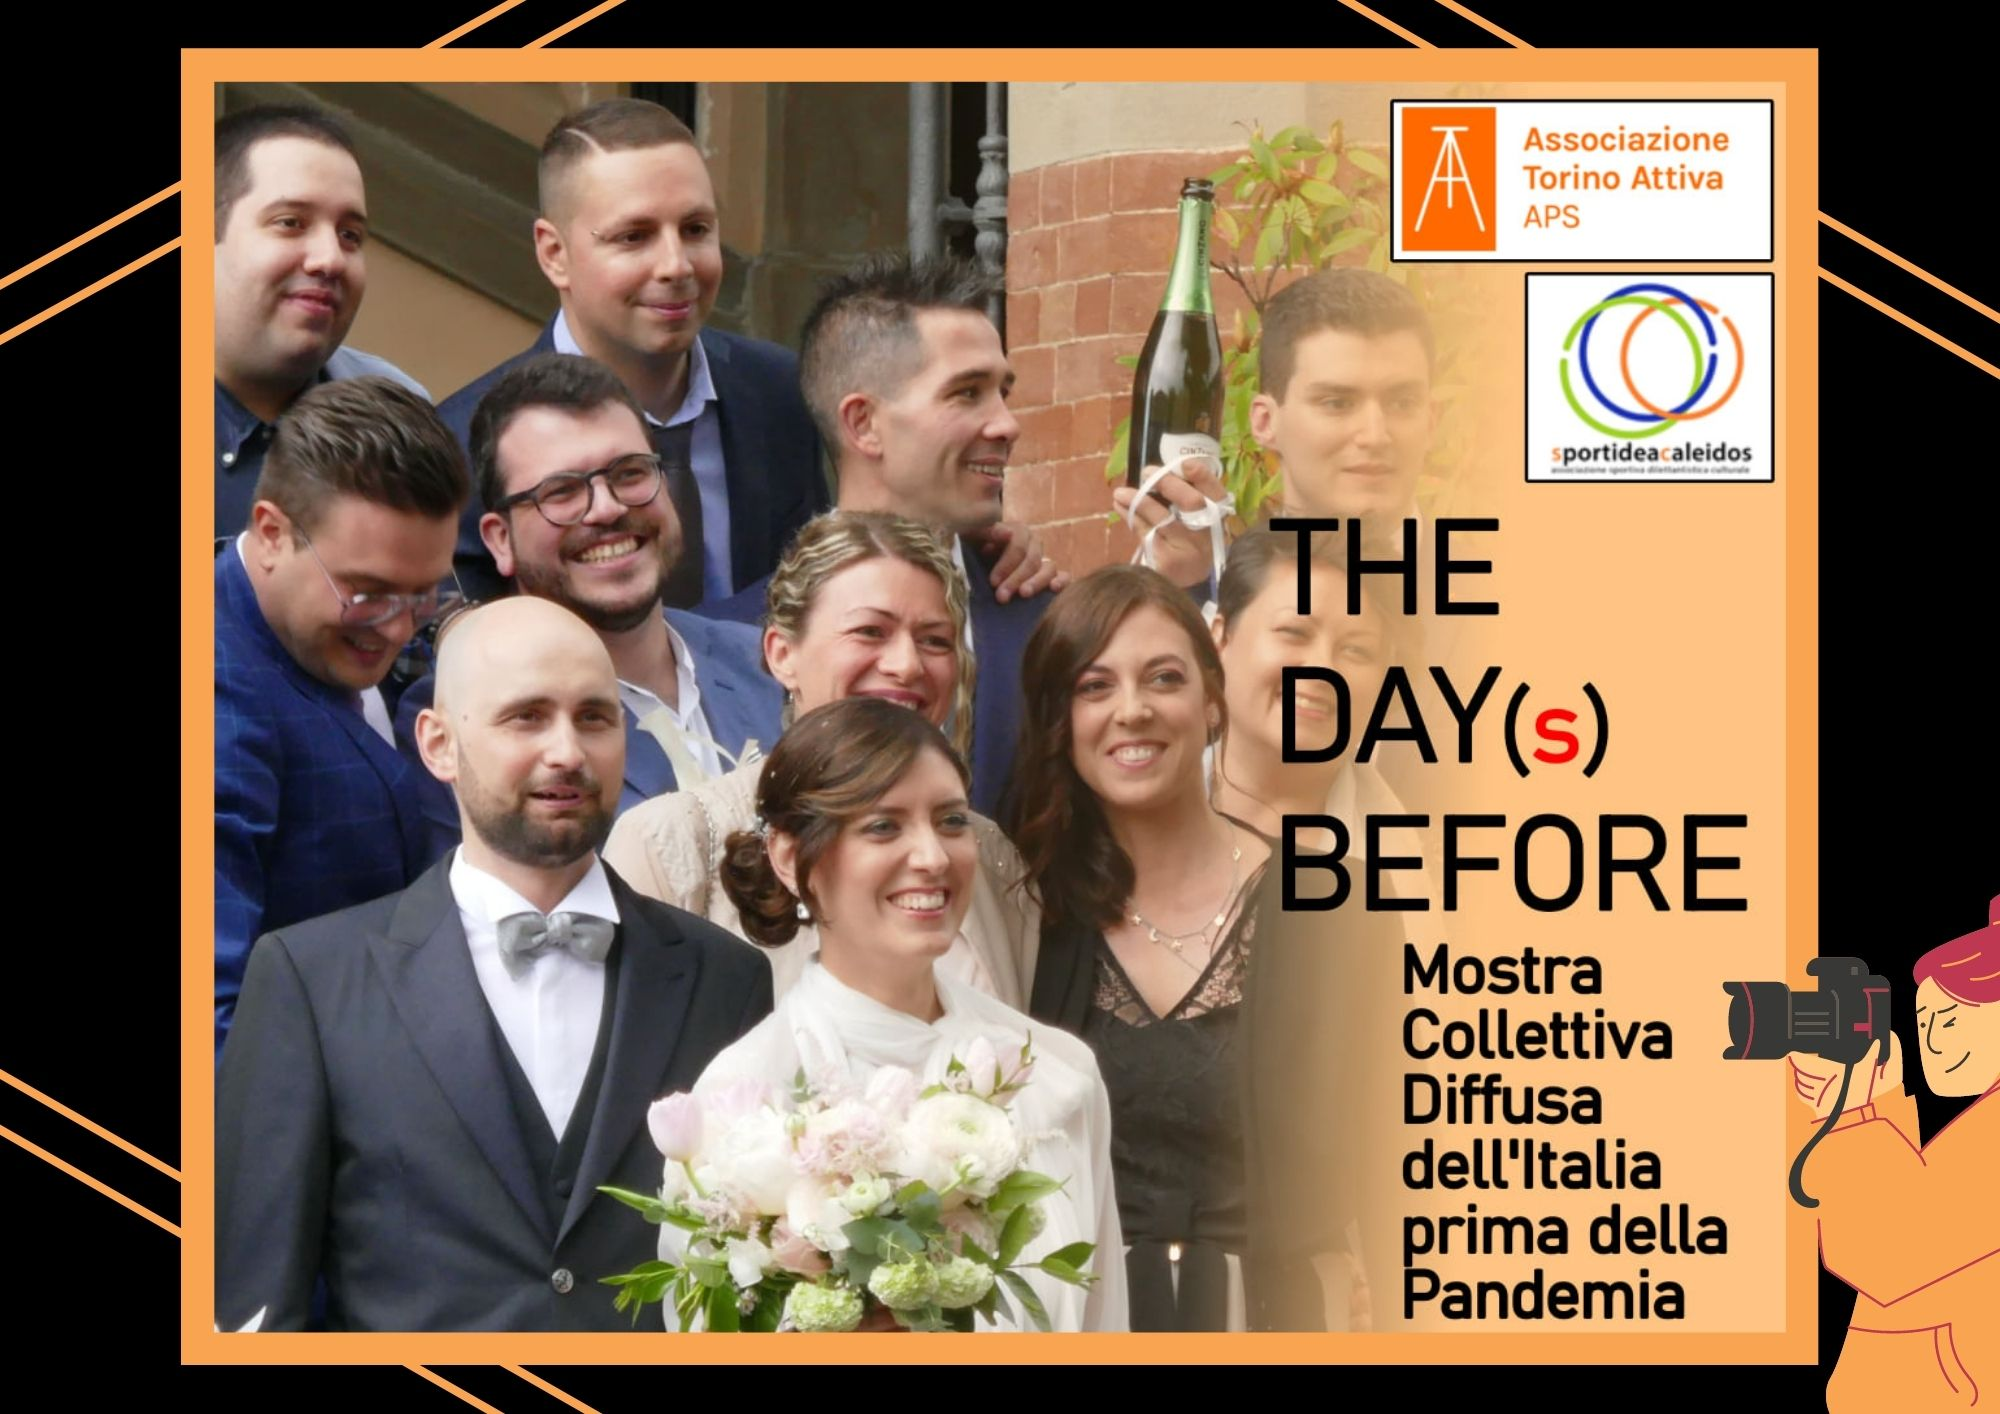 THE DAY(s) BEFORE